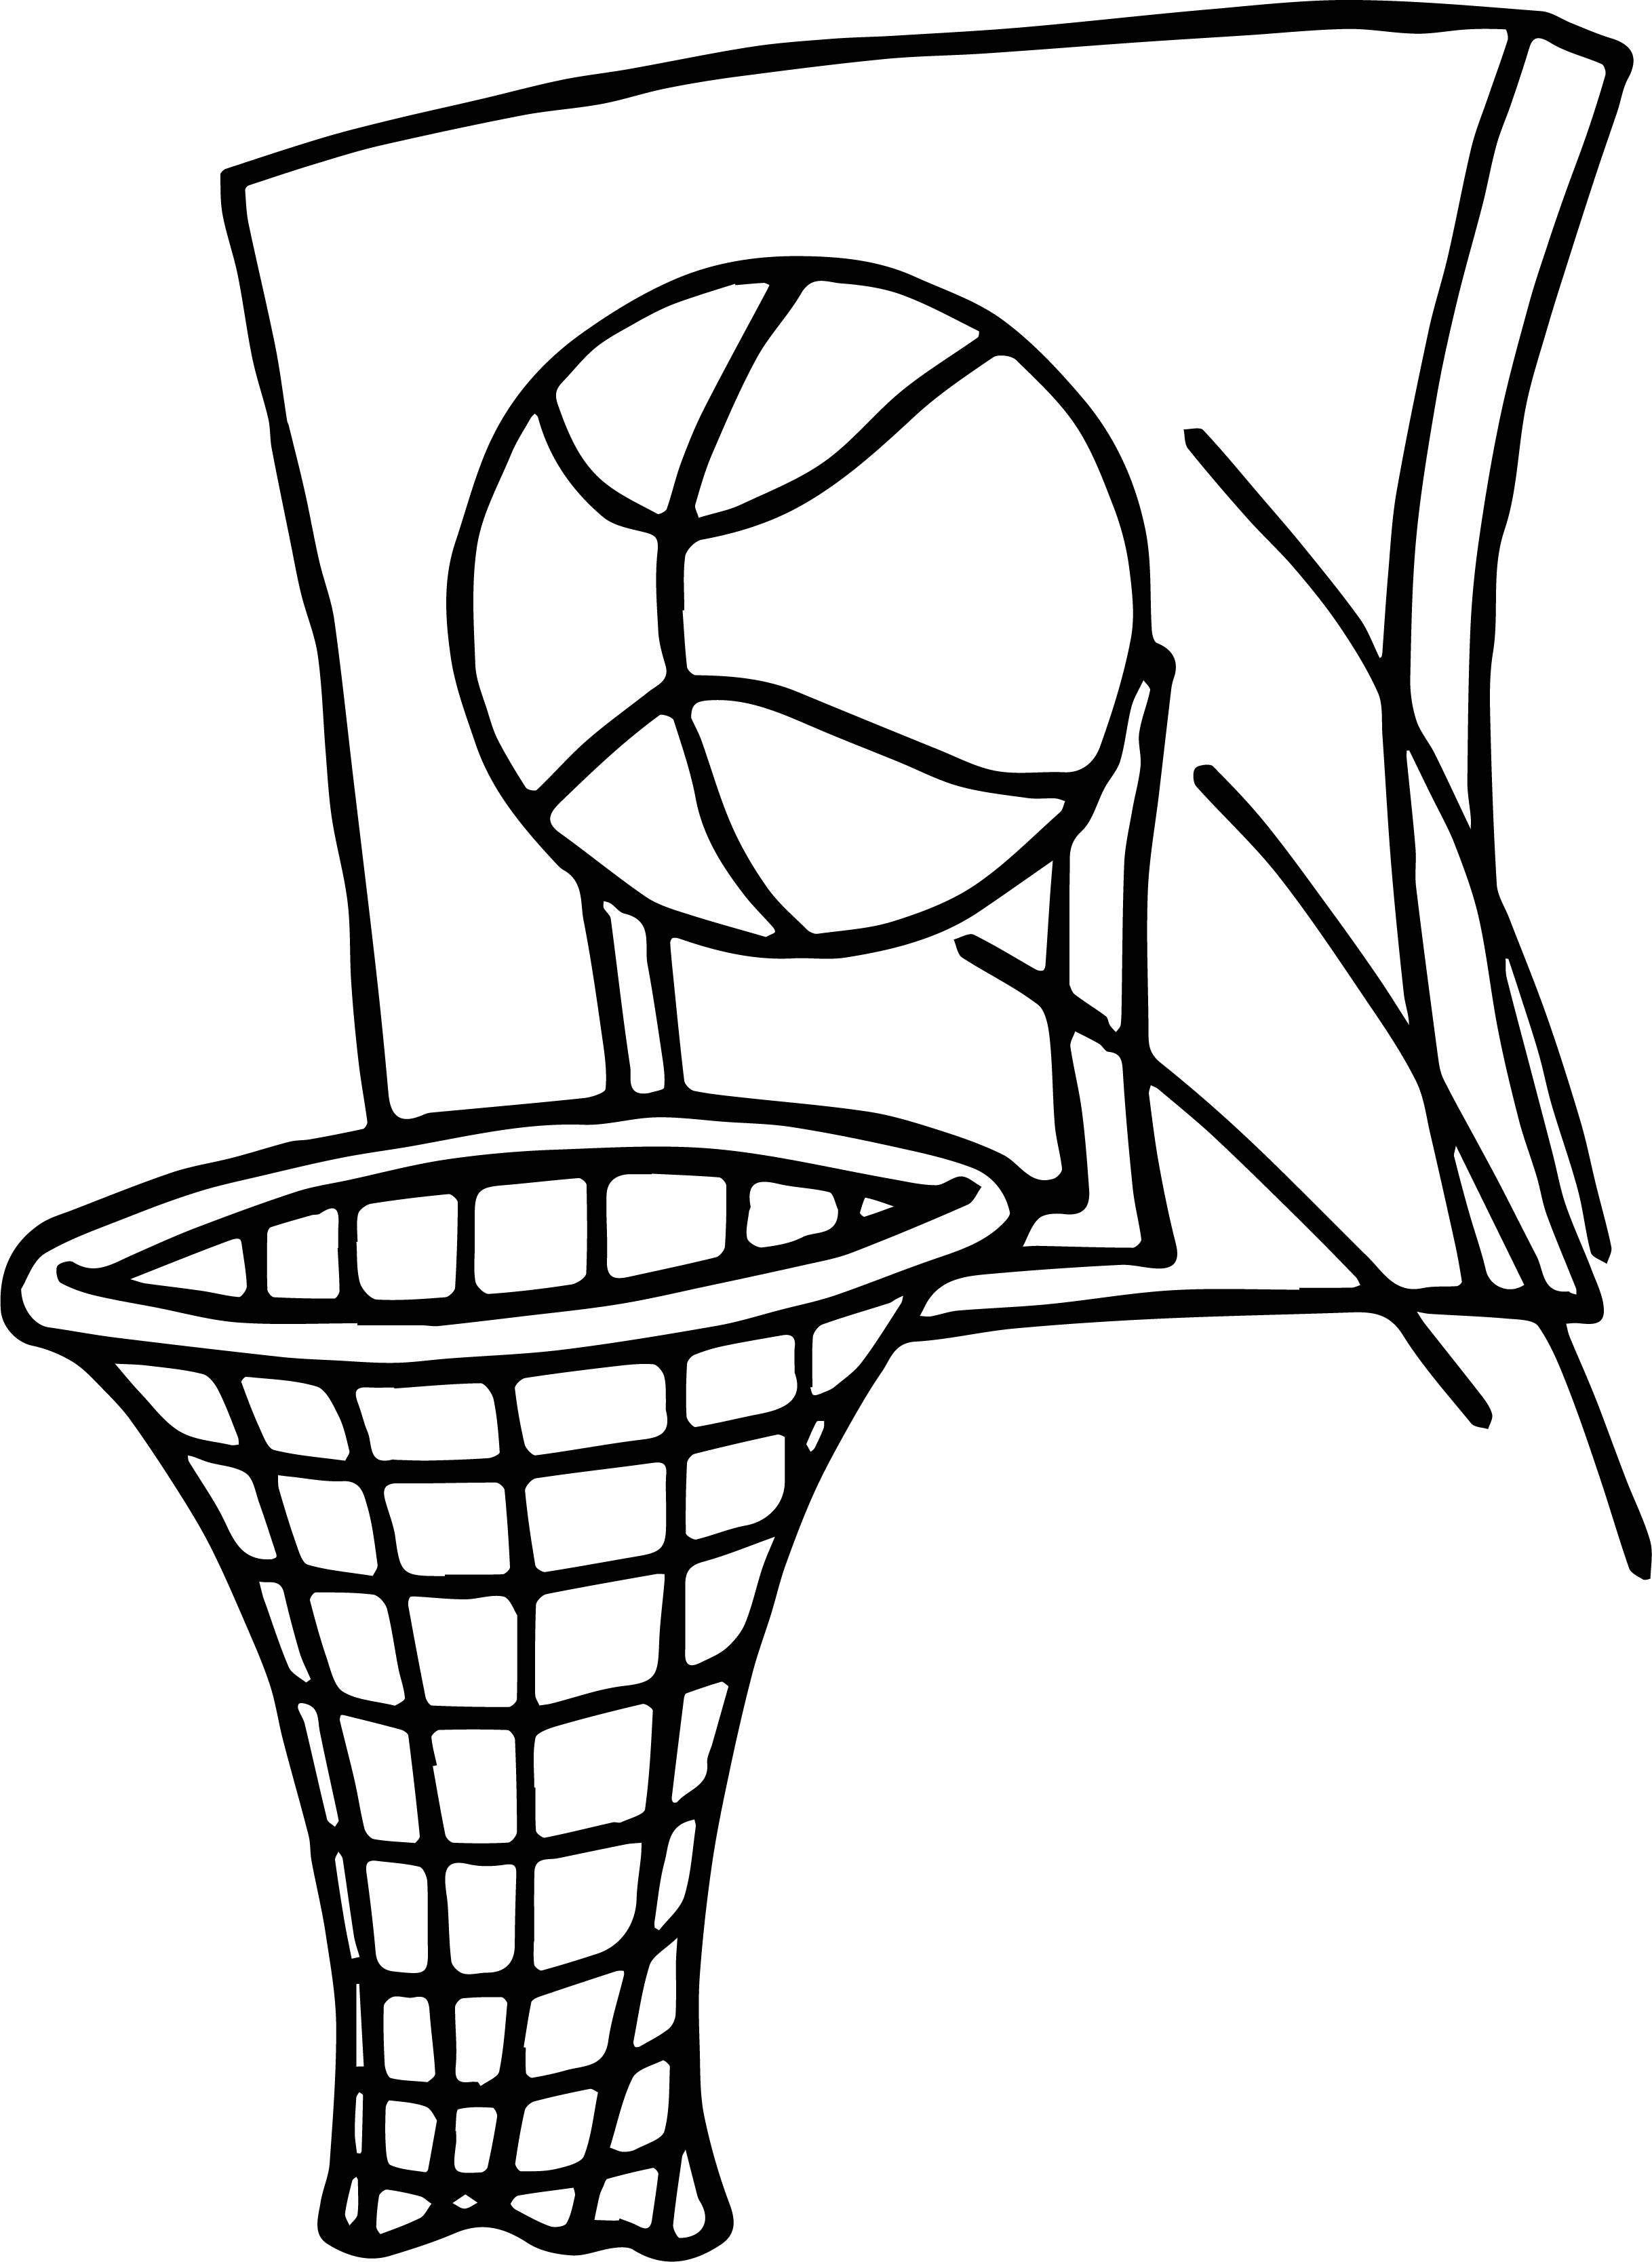 2436x3335 Basketball Goal Coloring Pages Basketball Hoop Coloring Pages